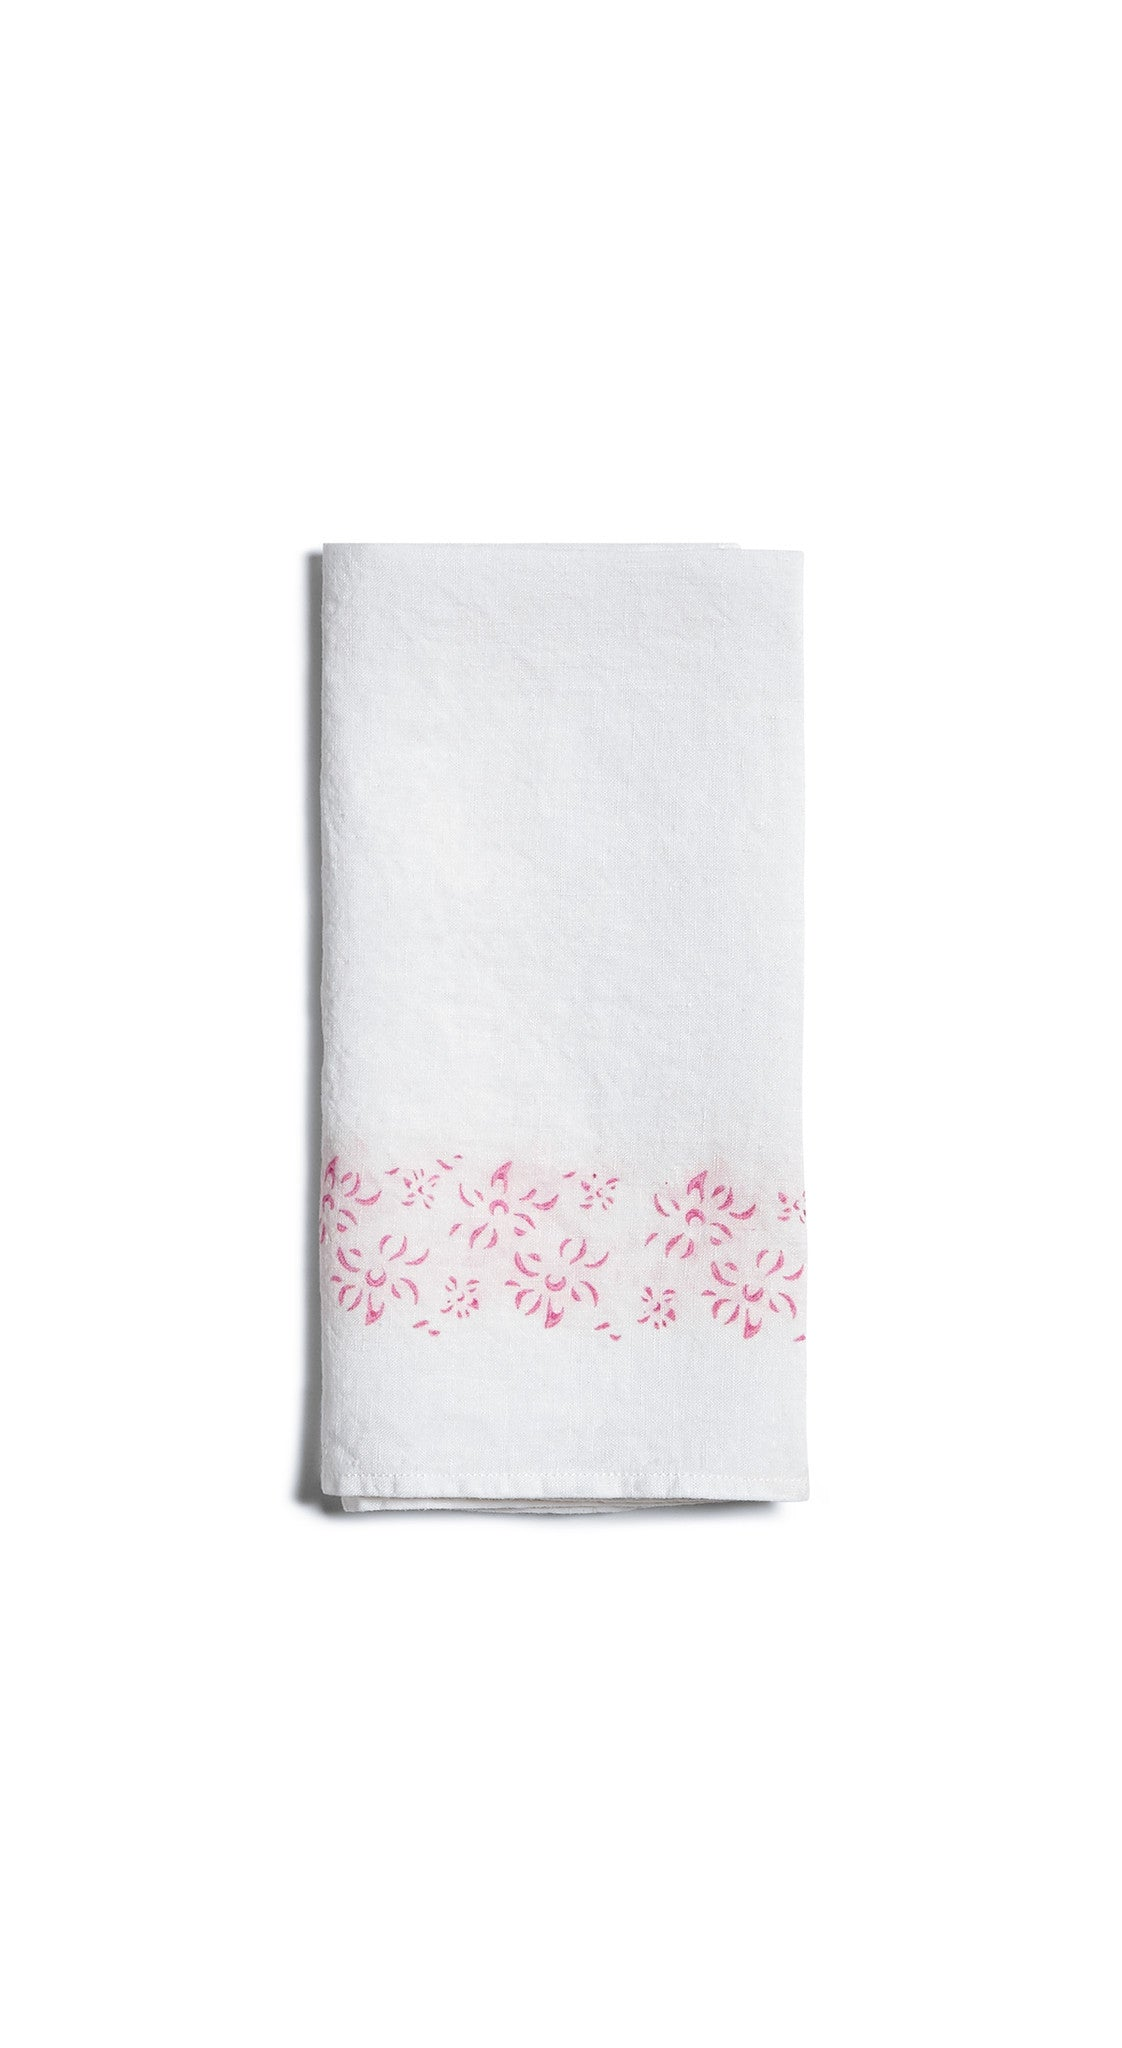 Bernadette's Framed Flower Linen Napkin in Rose Pink